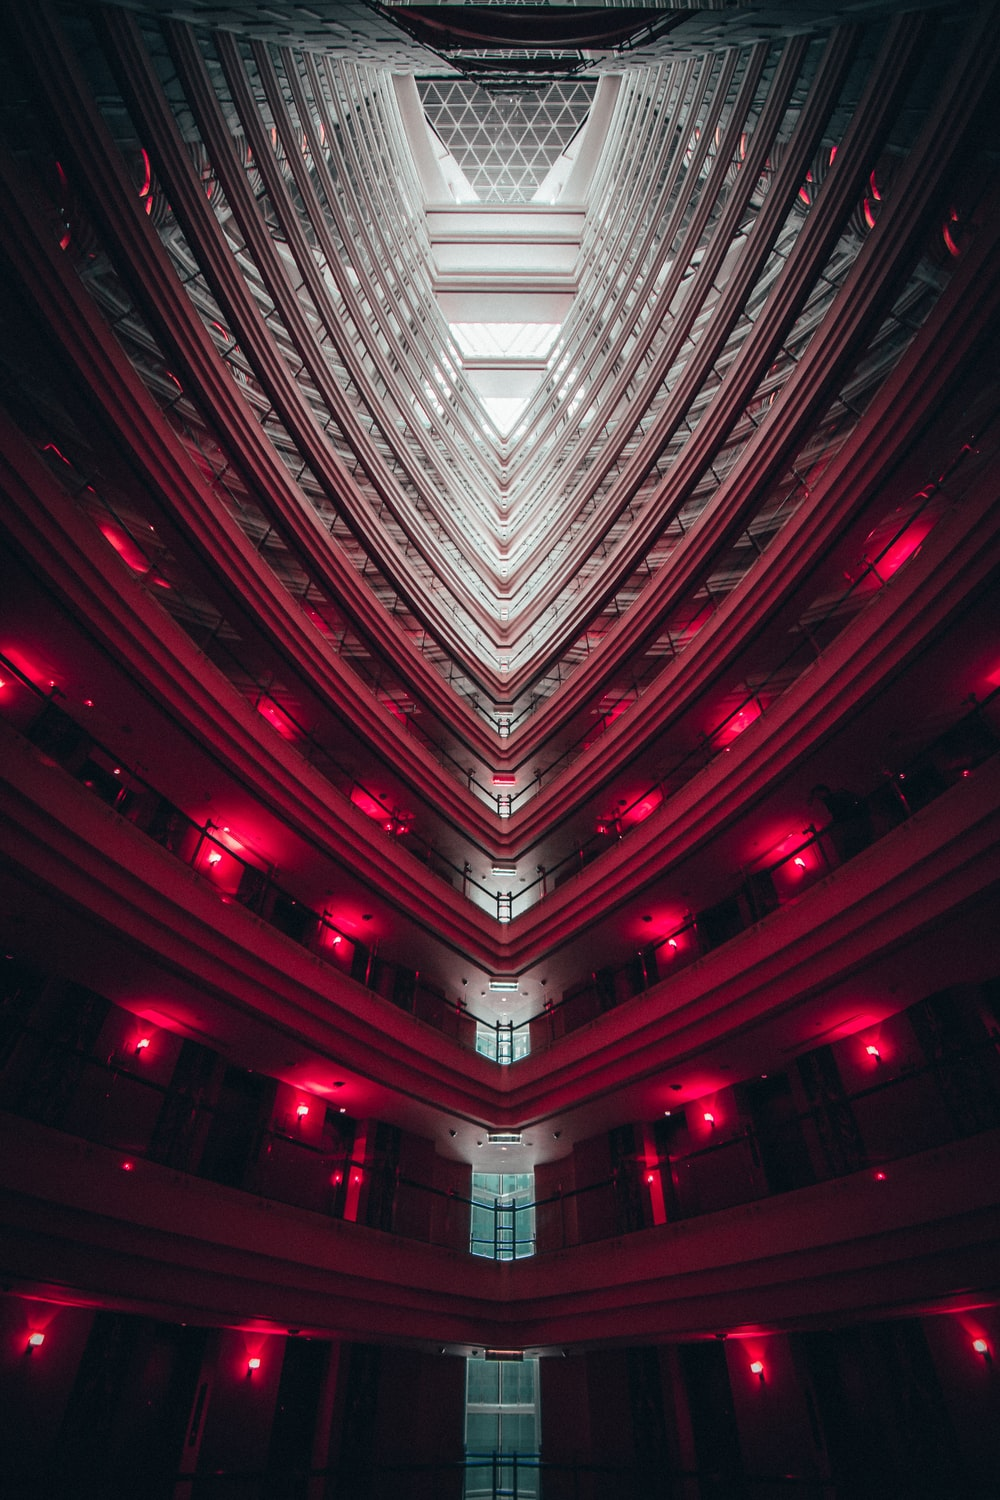 low-angled photography of building interior with red lights